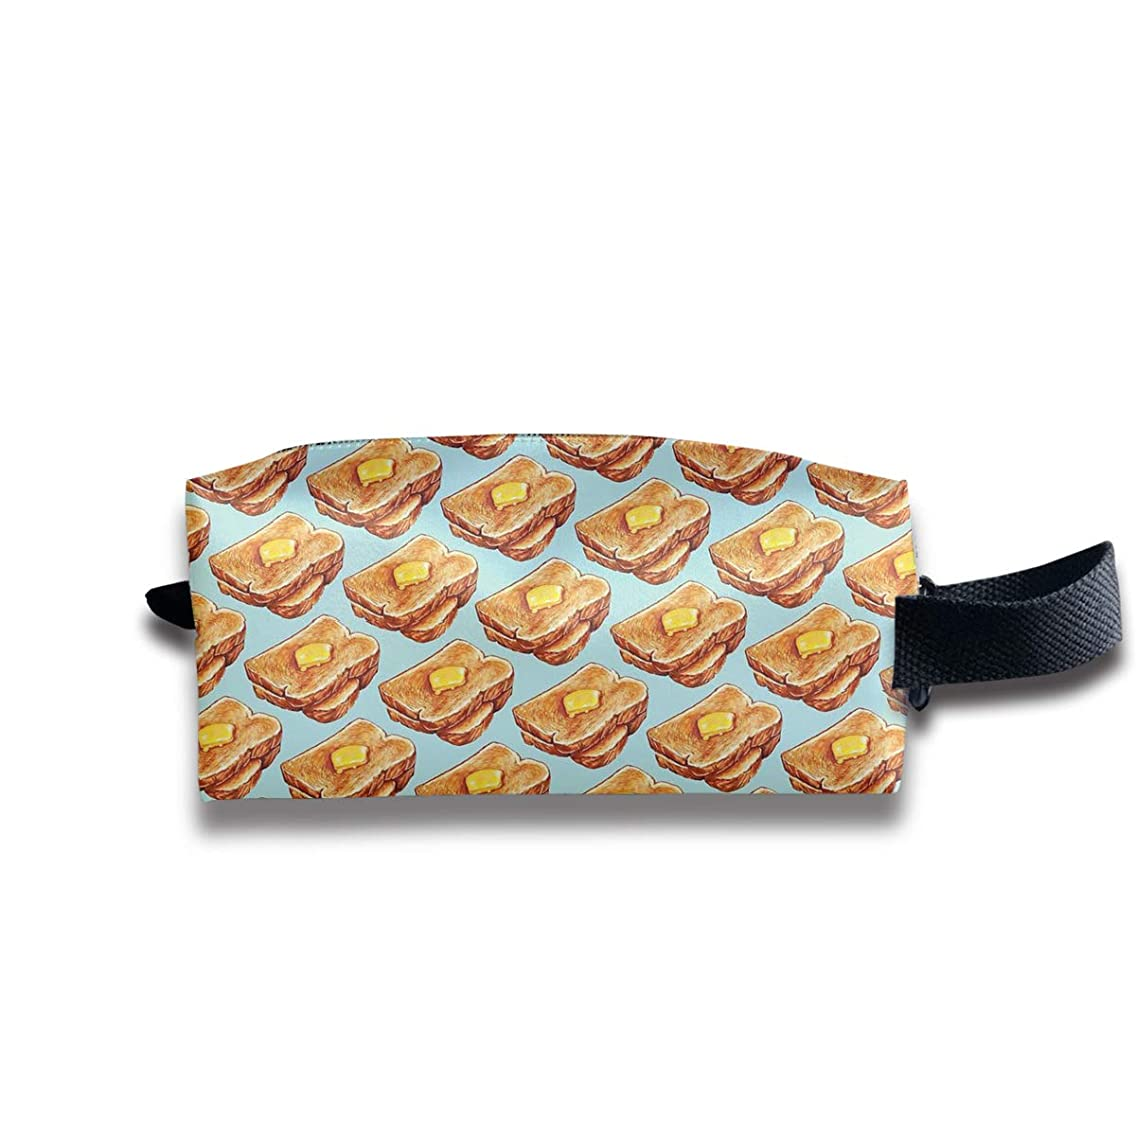 SHdYtrt Toast Toiletry Bag Multifunction Portable Wash Bag Cosmetic Organizer Pouch